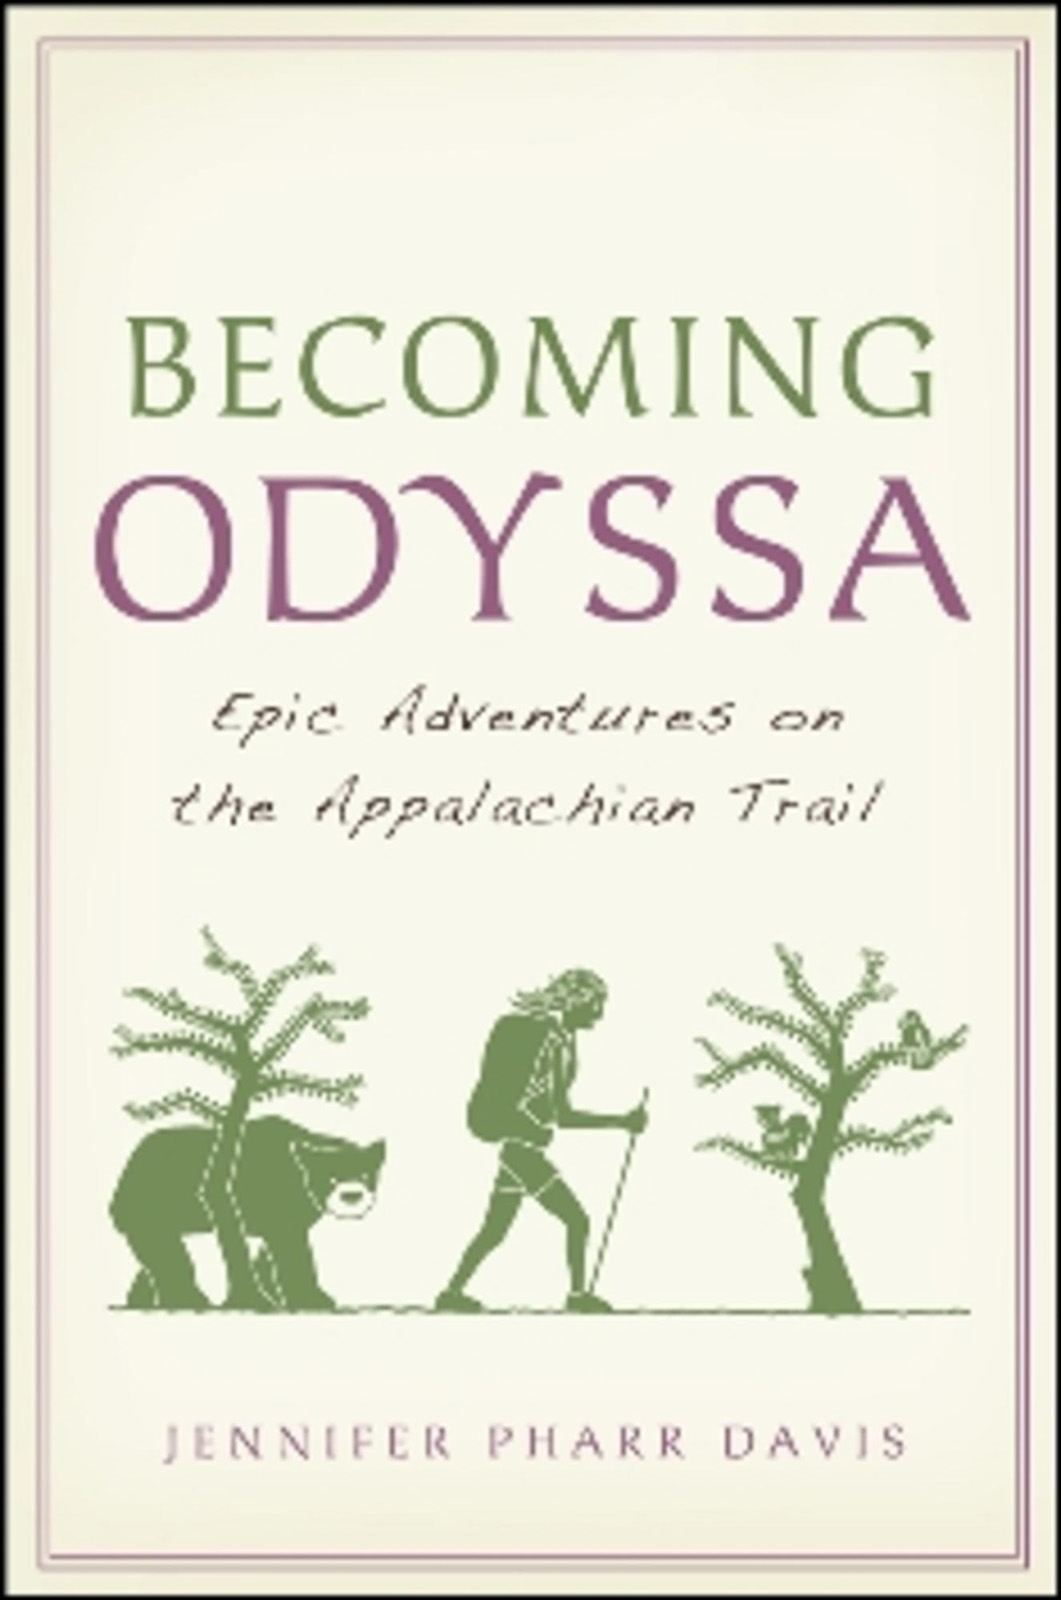 Becoming Odyssa: Epic Adventures on the Appalachian Trail By: Pharr Davis, Jennifer